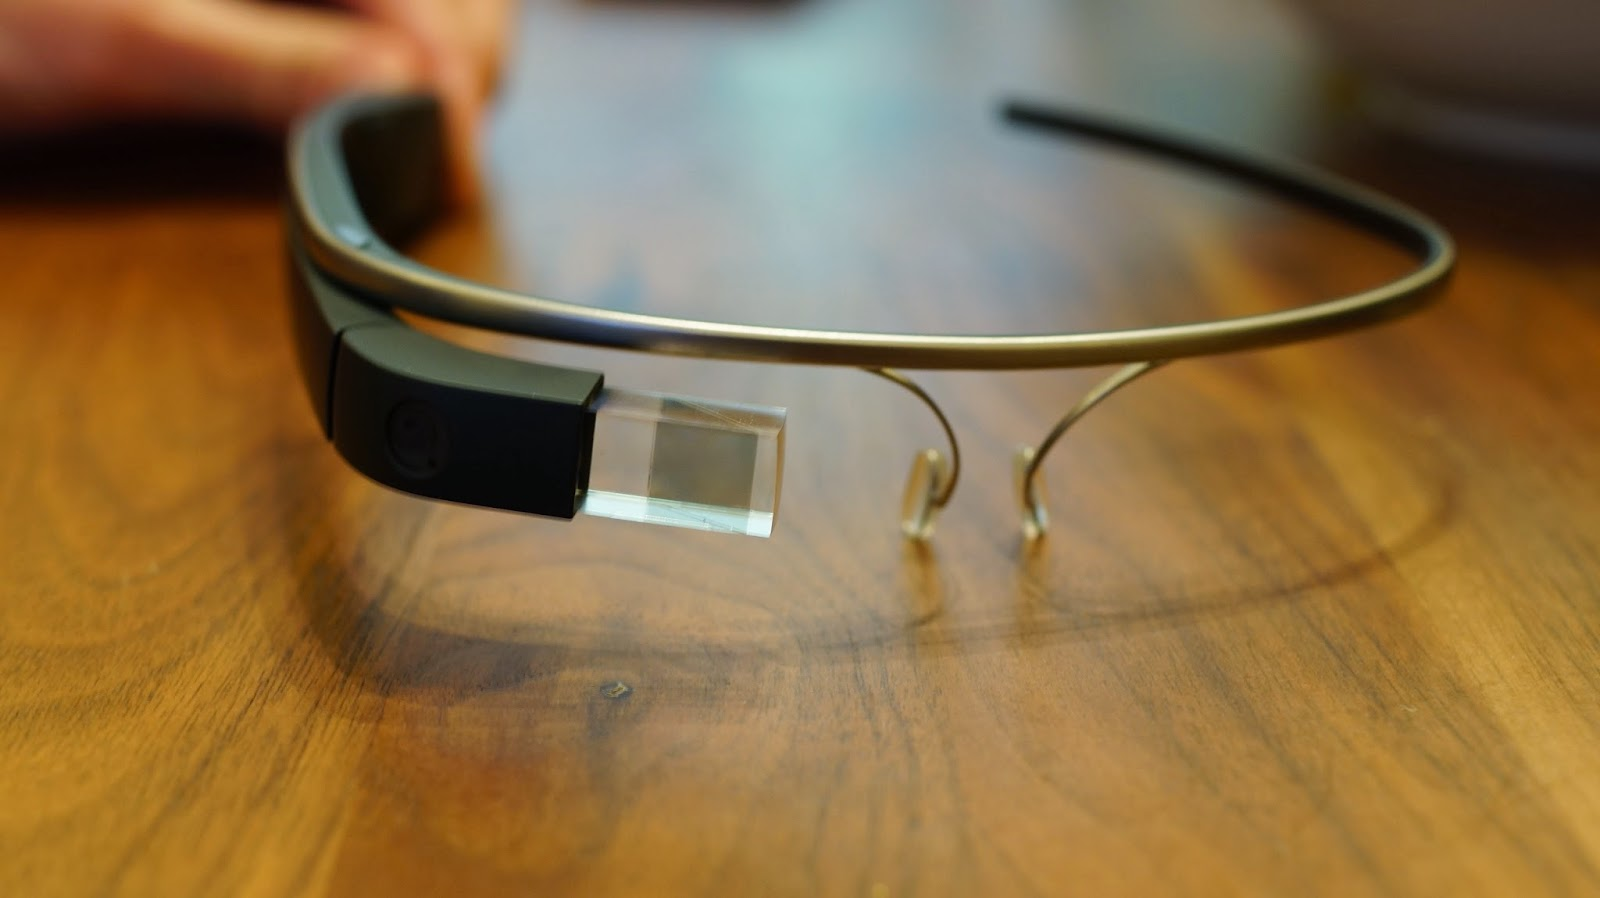 Google Glass Get A New Update: A Calendar App And iPhone SMS Support